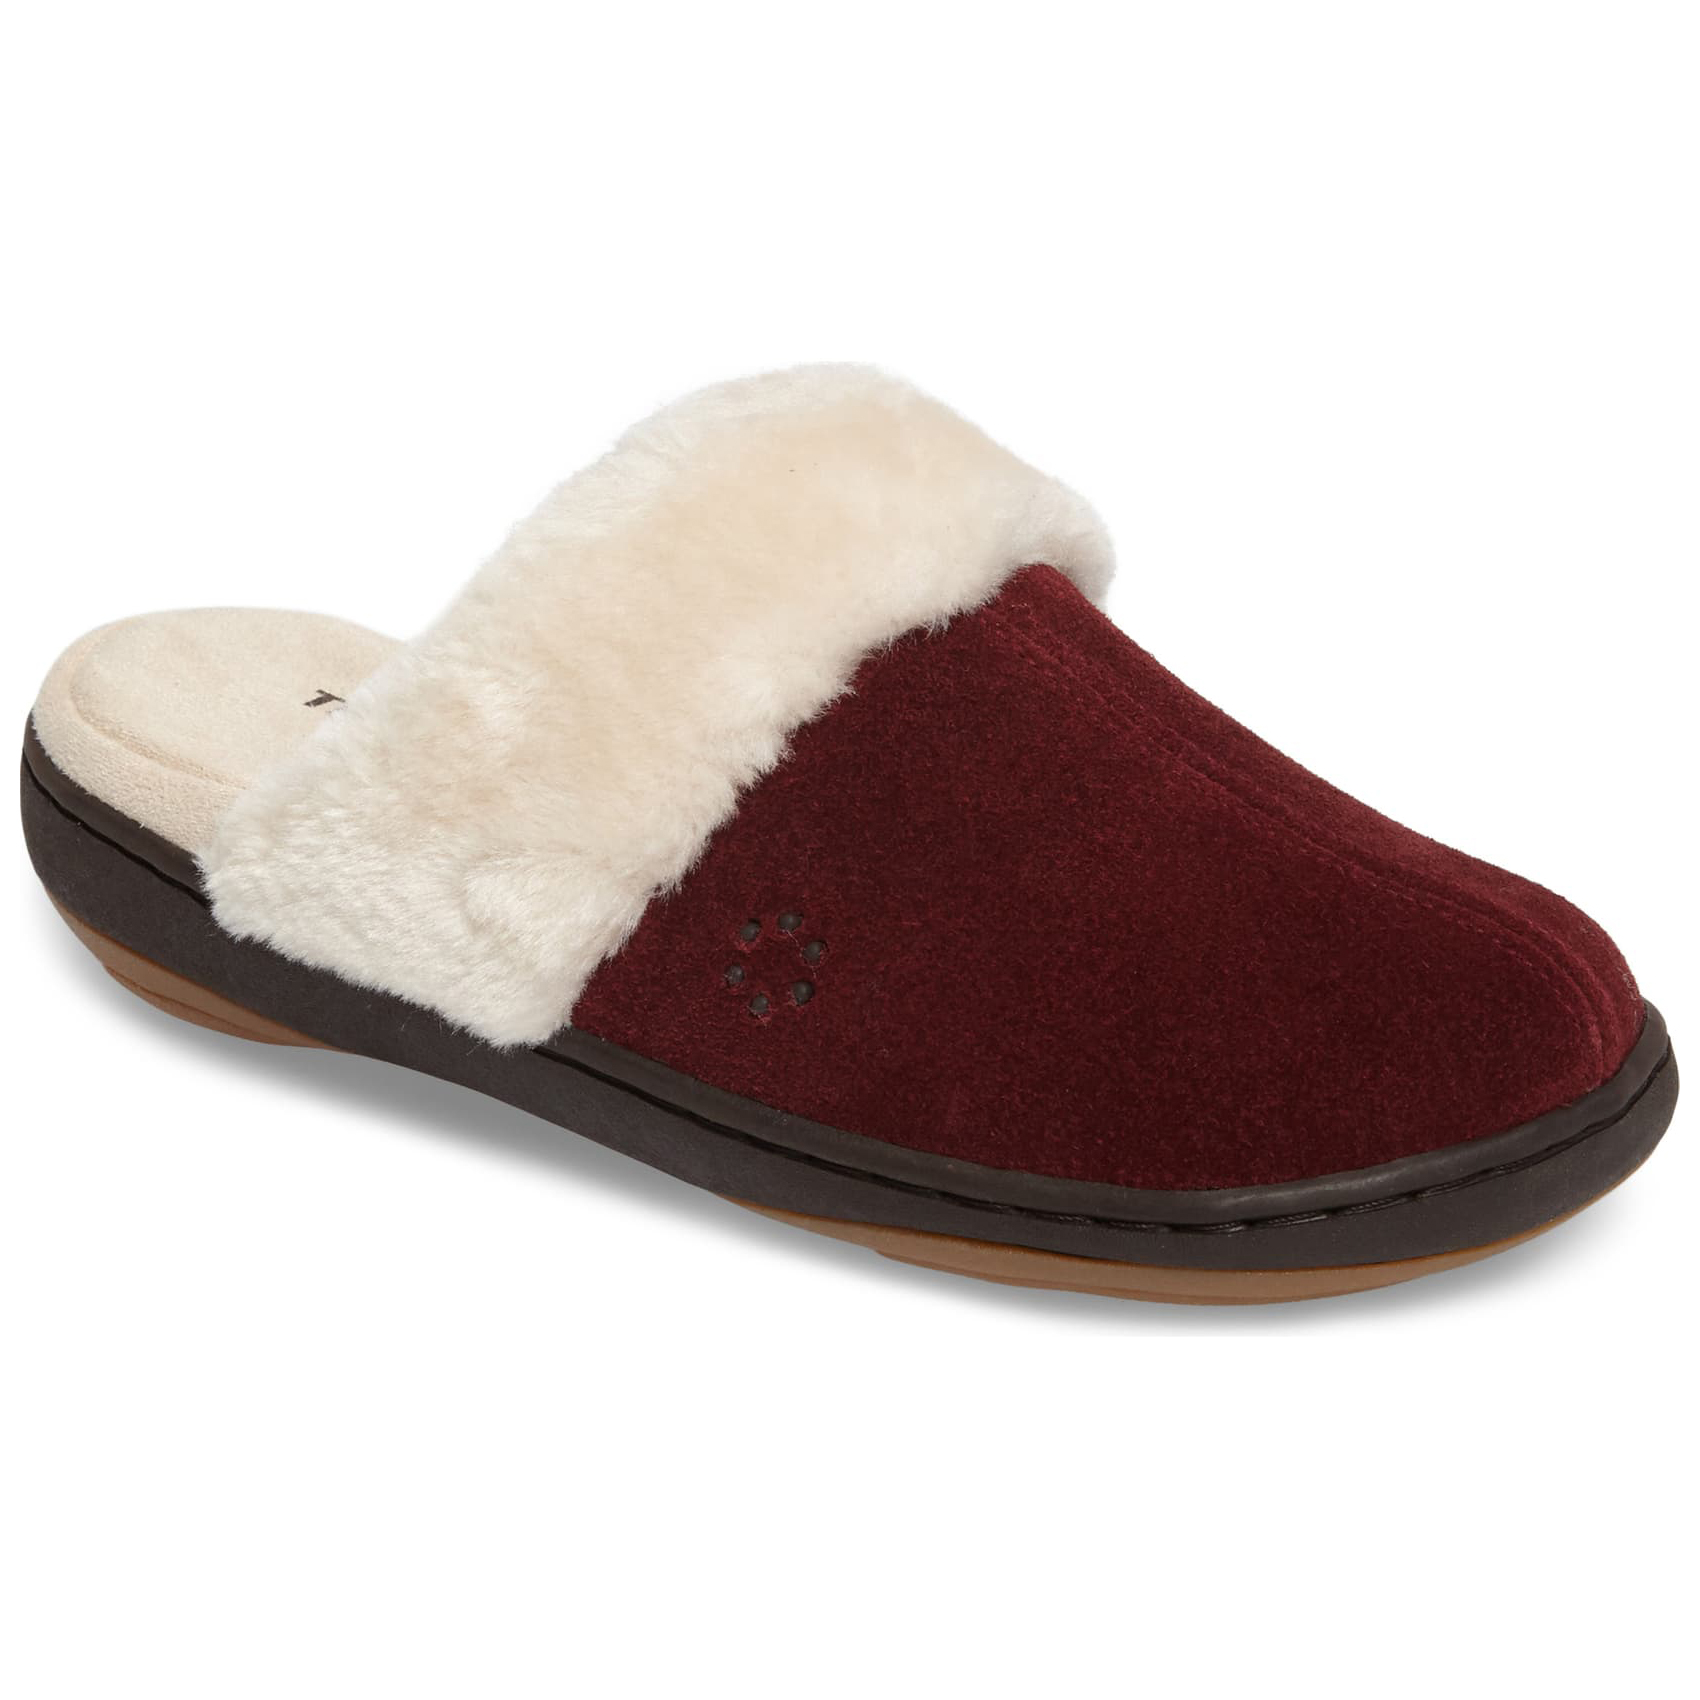 Tempur-Pedic Kensley Slipper